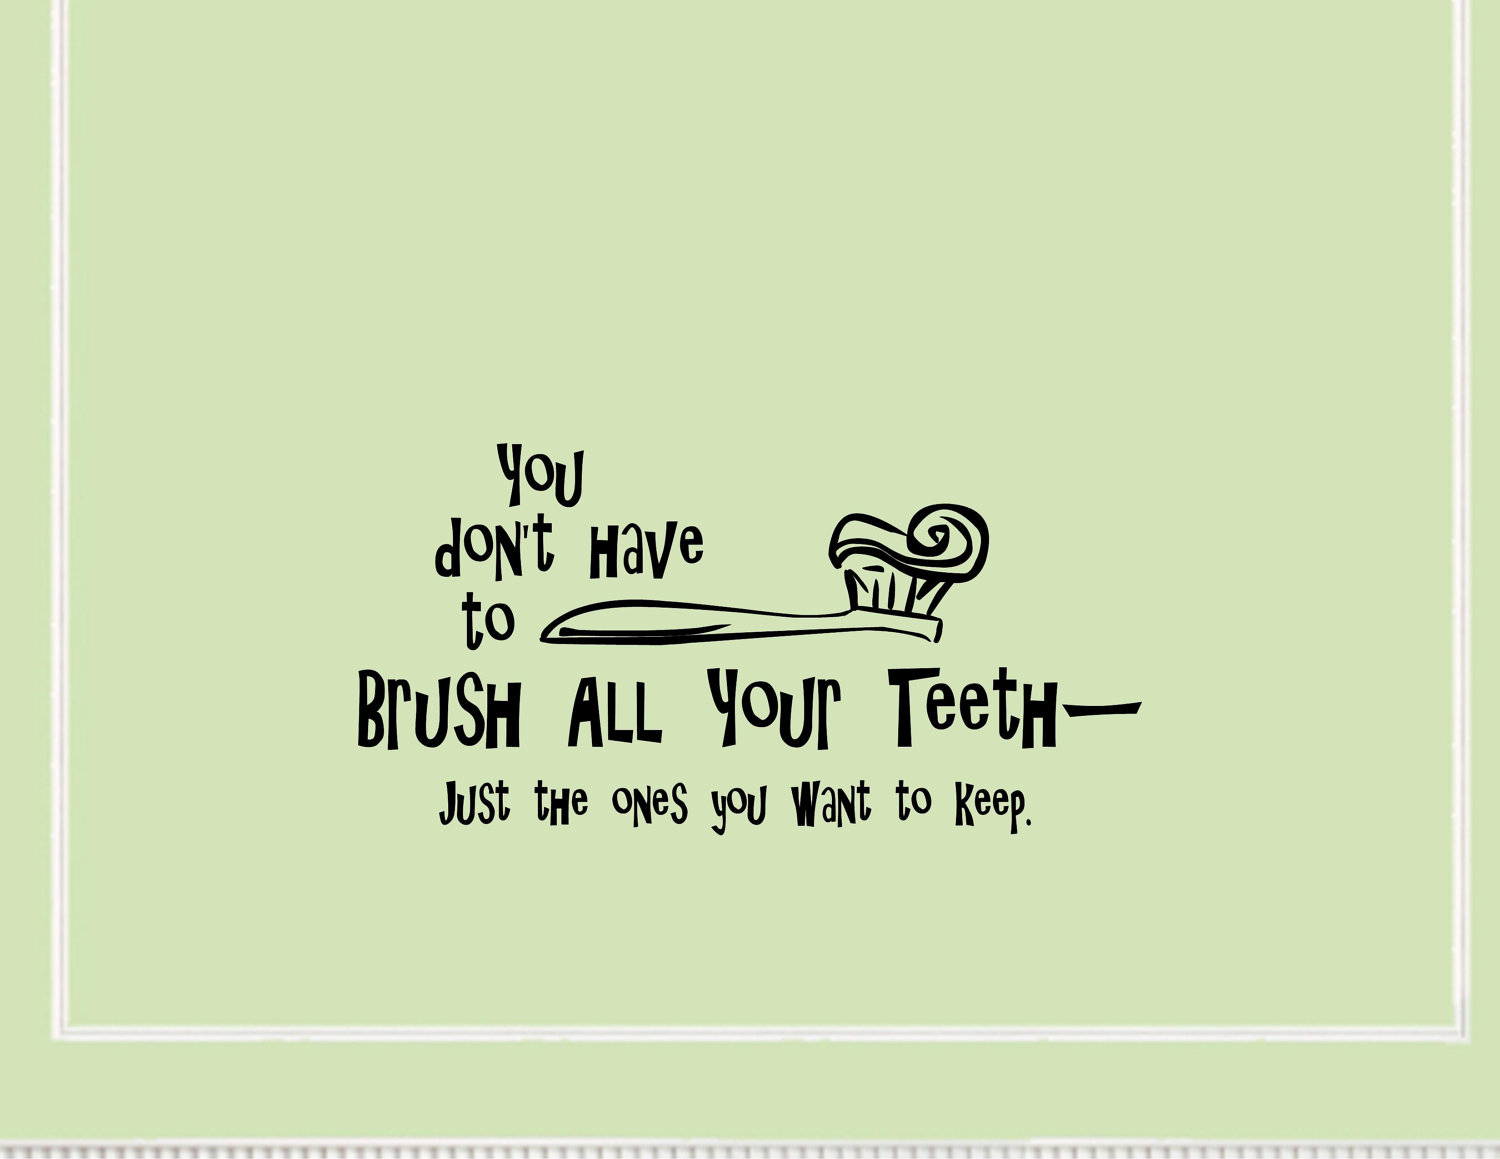 Brush Your Teeth Quotes: Funny Quotes About Teeth. QuotesGram